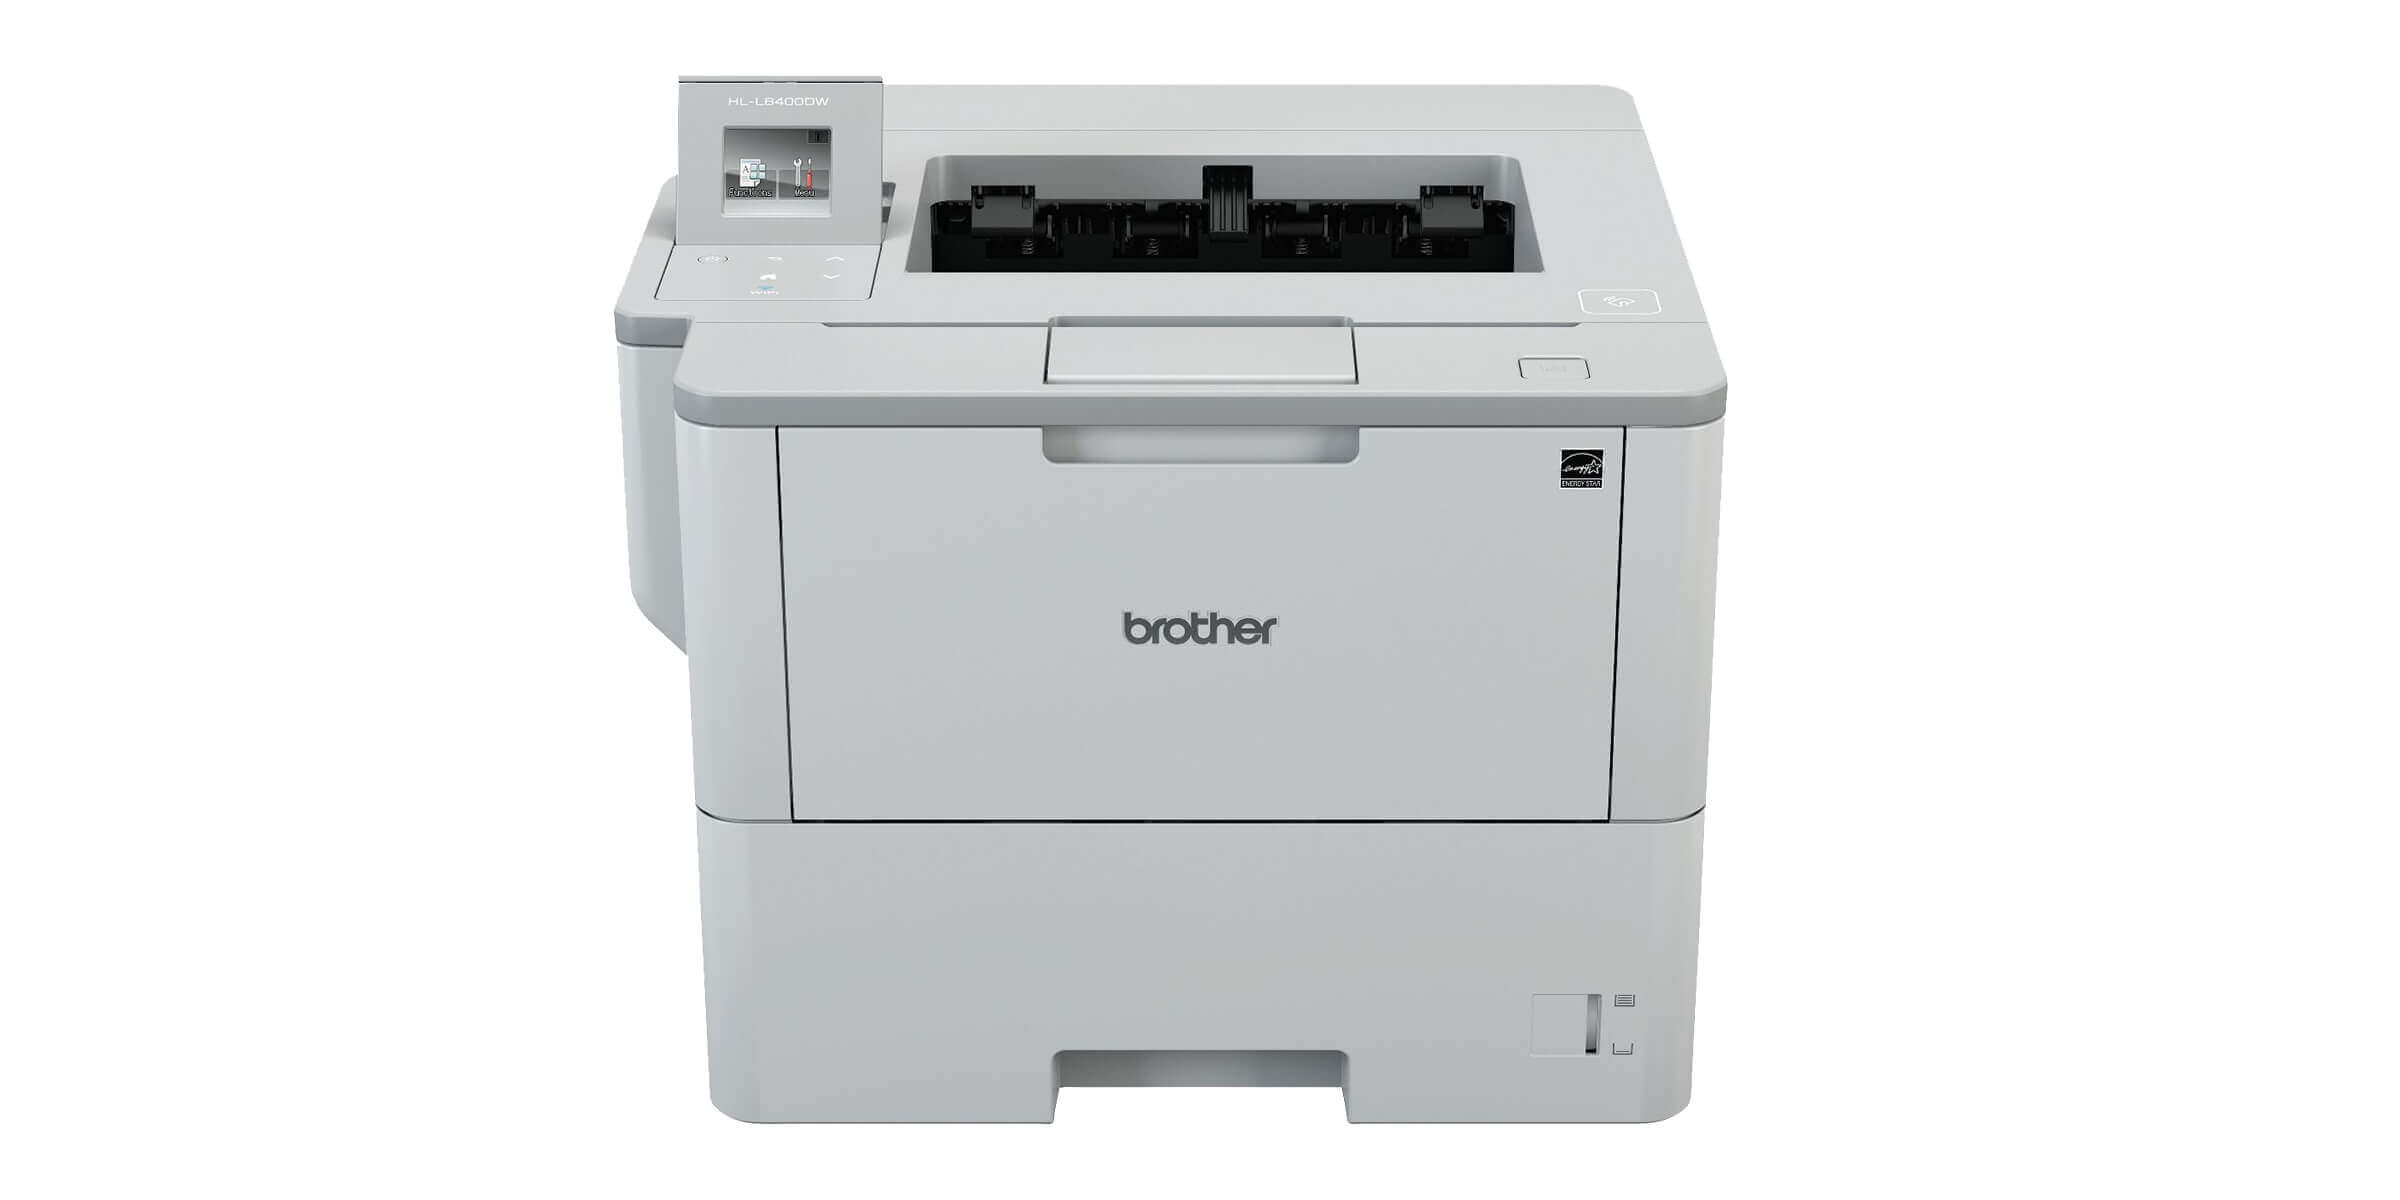 Brother HL-L6400DW Laserdrucker Front-Ansicht